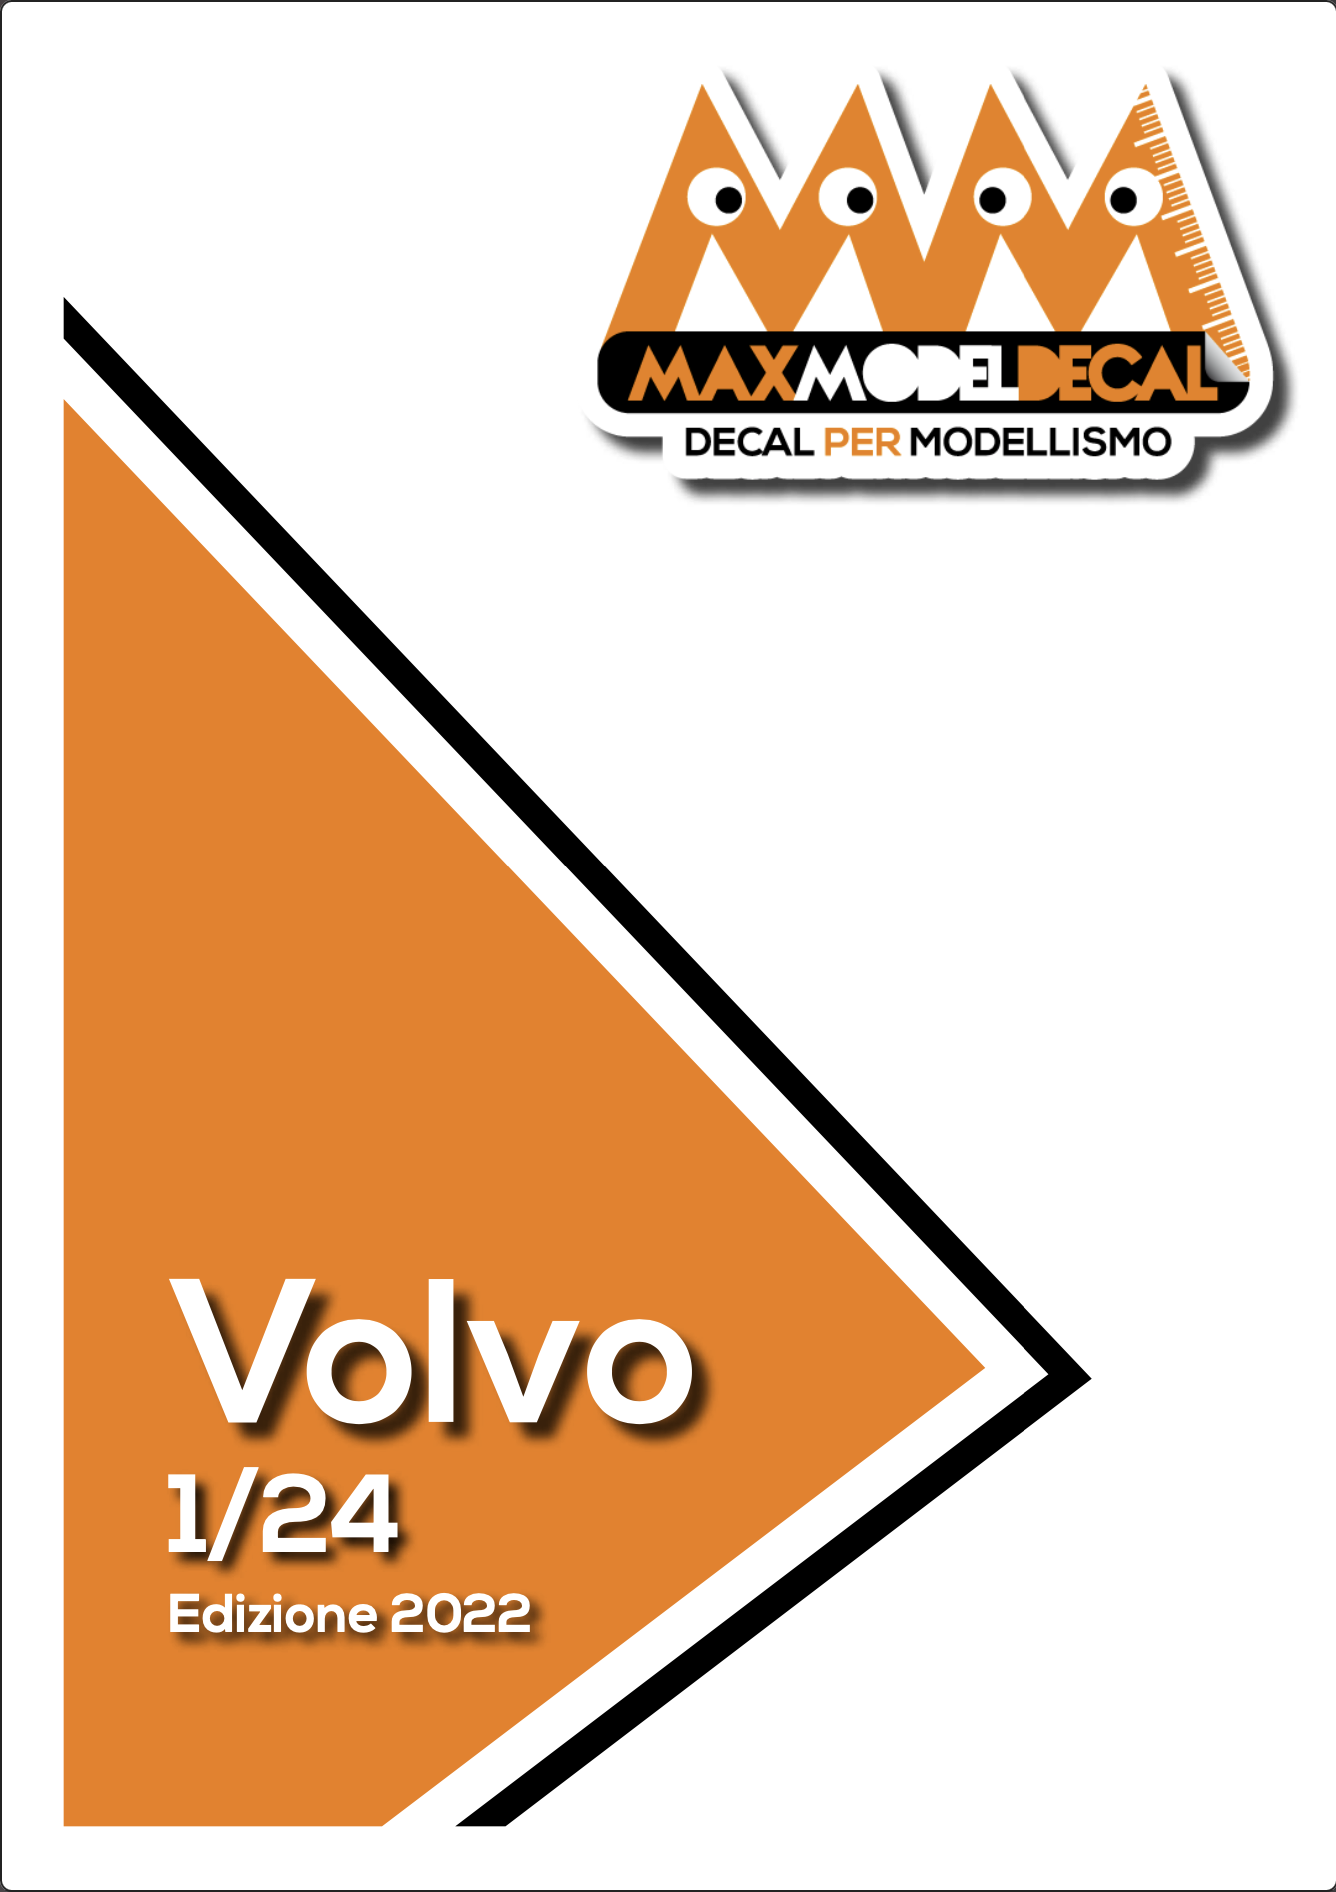 Volvo24_2021.png